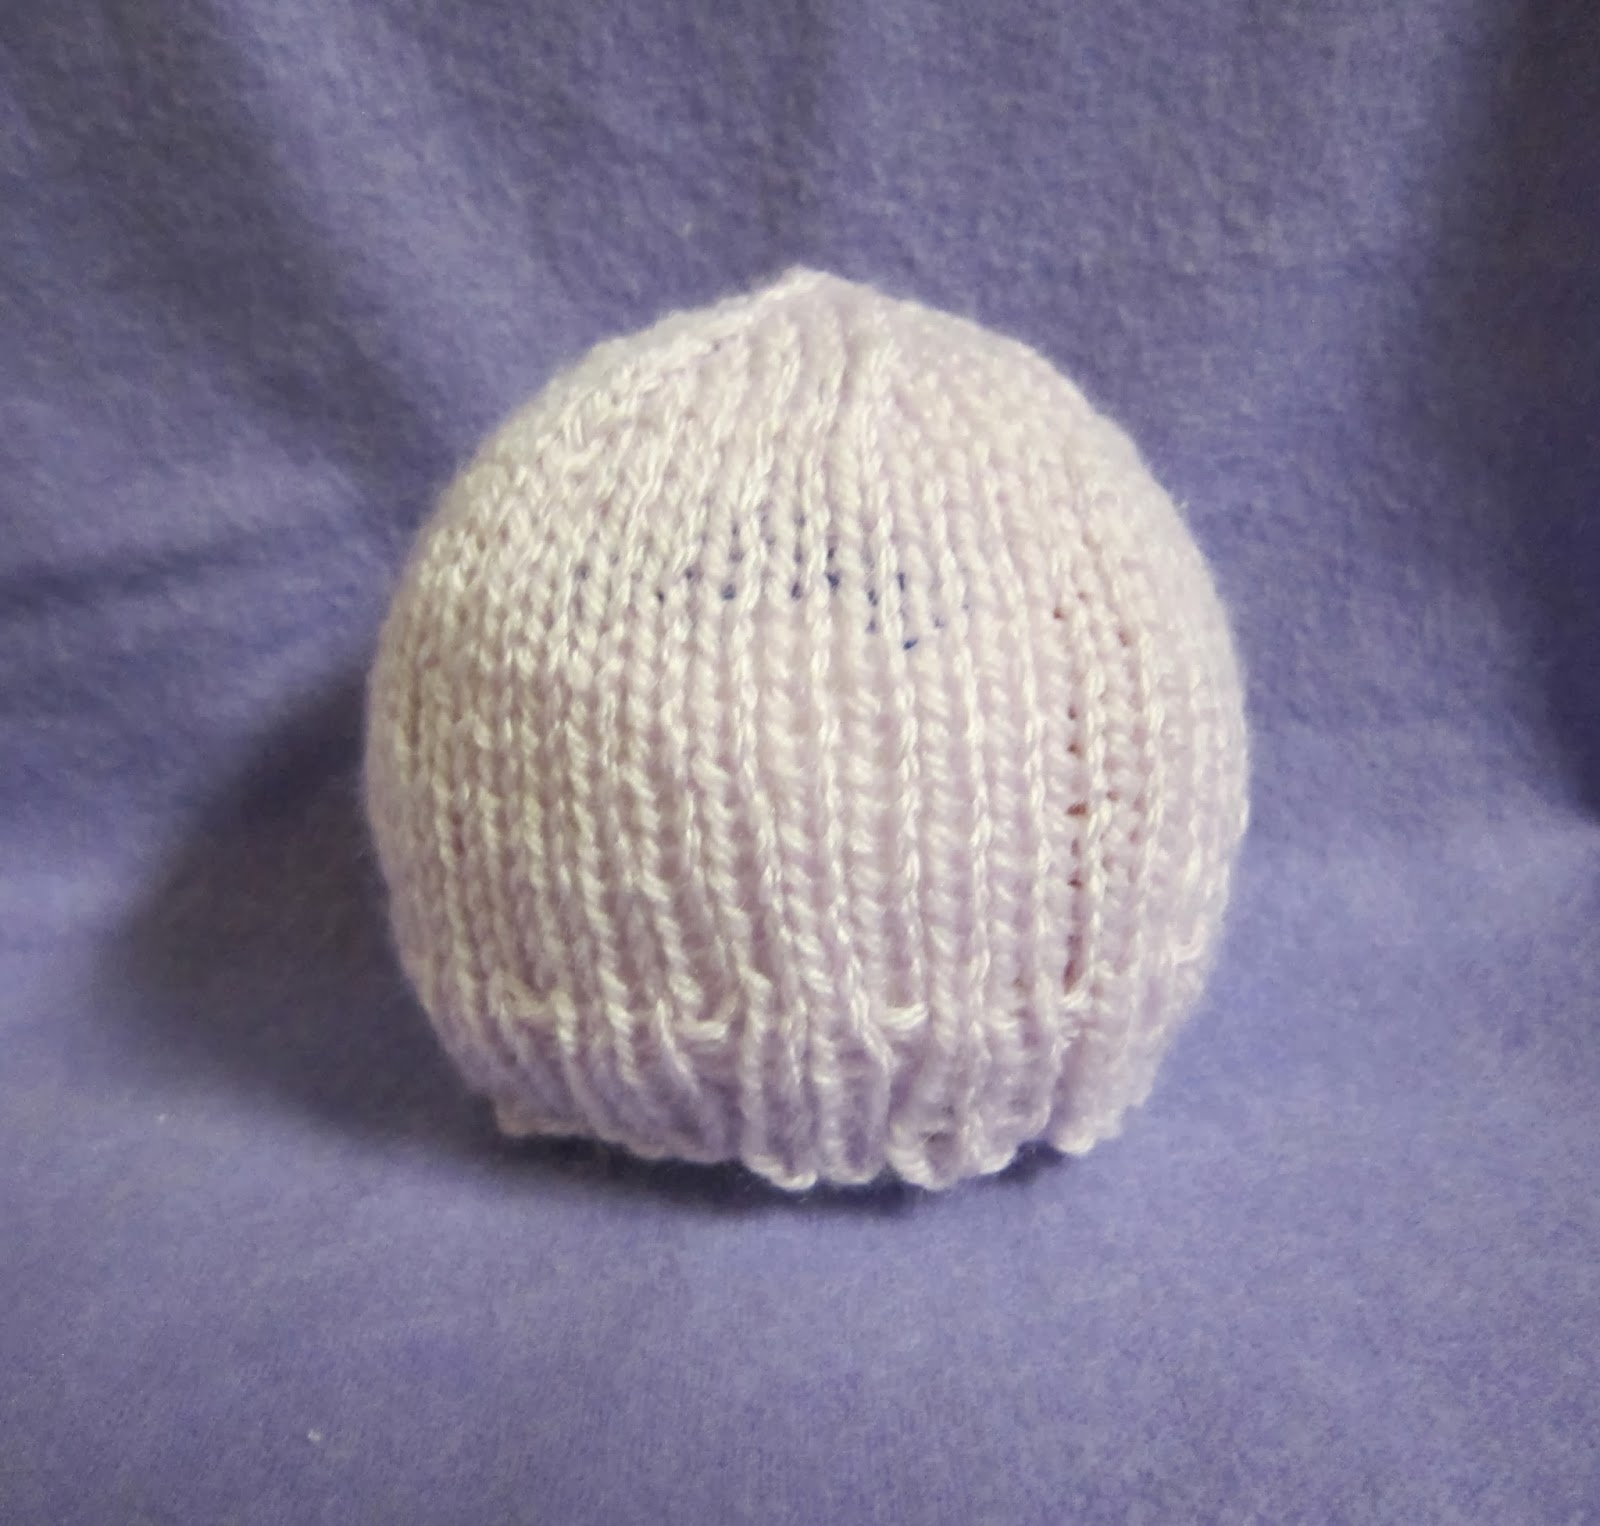 Sea Trail Grandmas: FREE KNIT PREEMIE AND NEWBORN PATTERNS ...